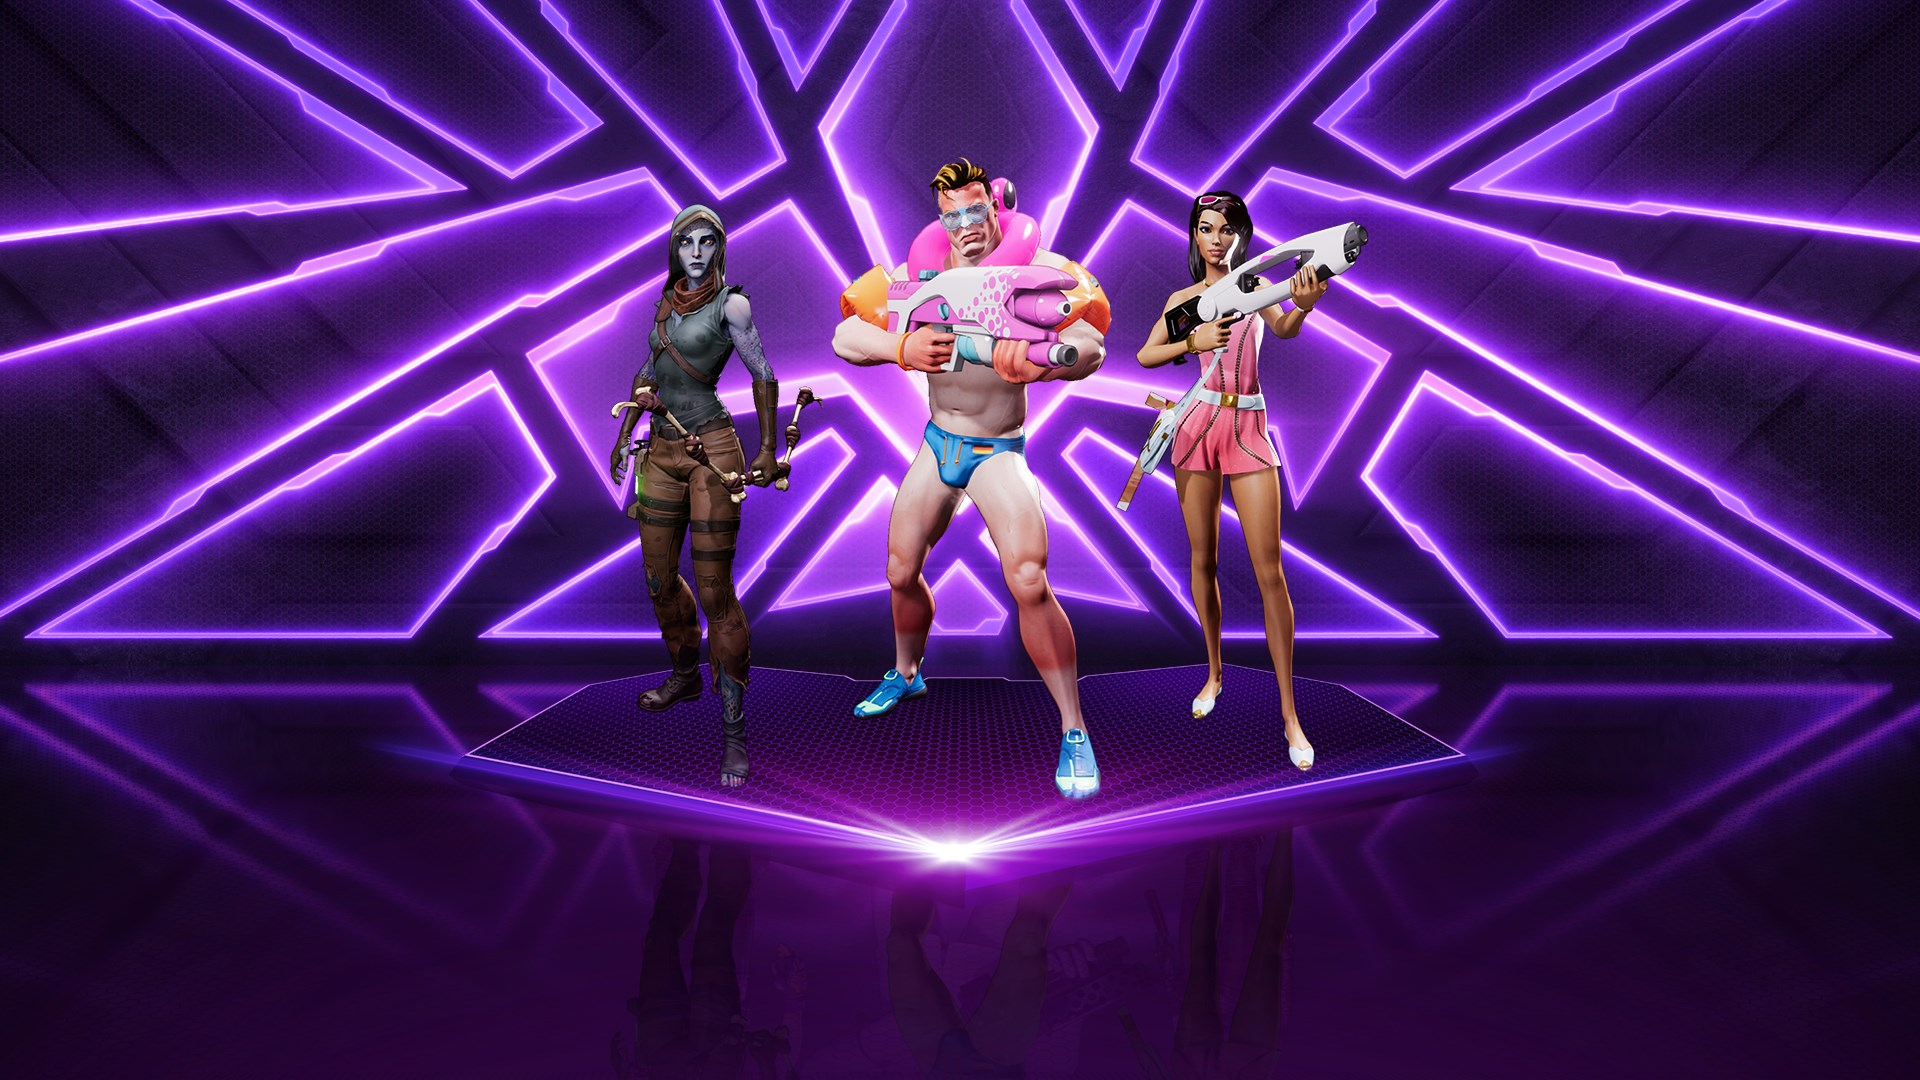 Agents of Mayhem - Bombshells Skins Pack